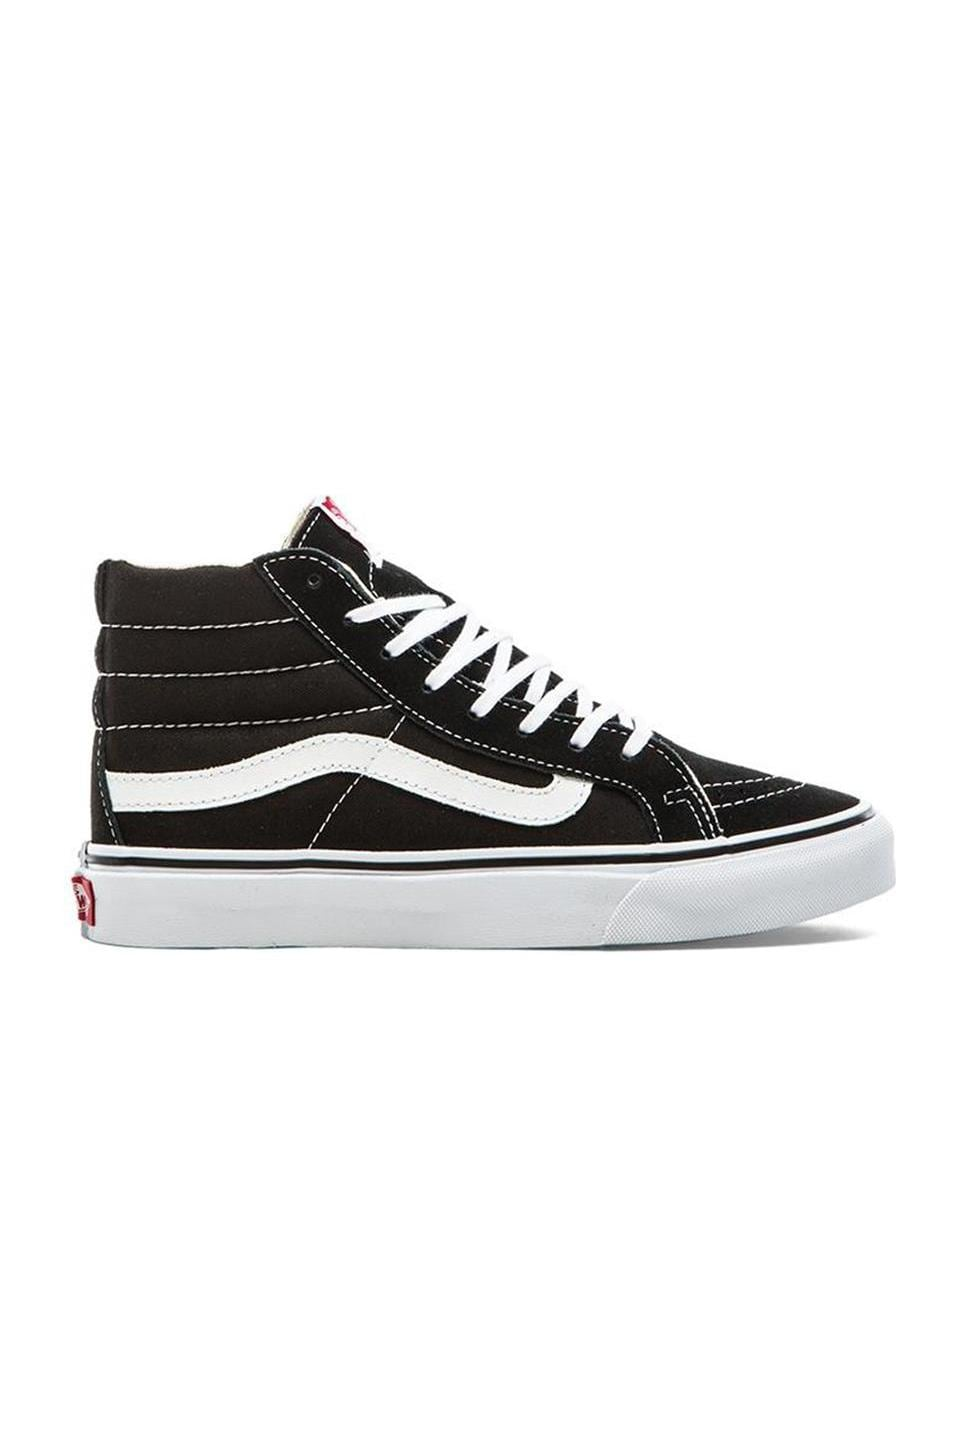 Vans Sk8-Hi Slim Sneaker in Black & True White